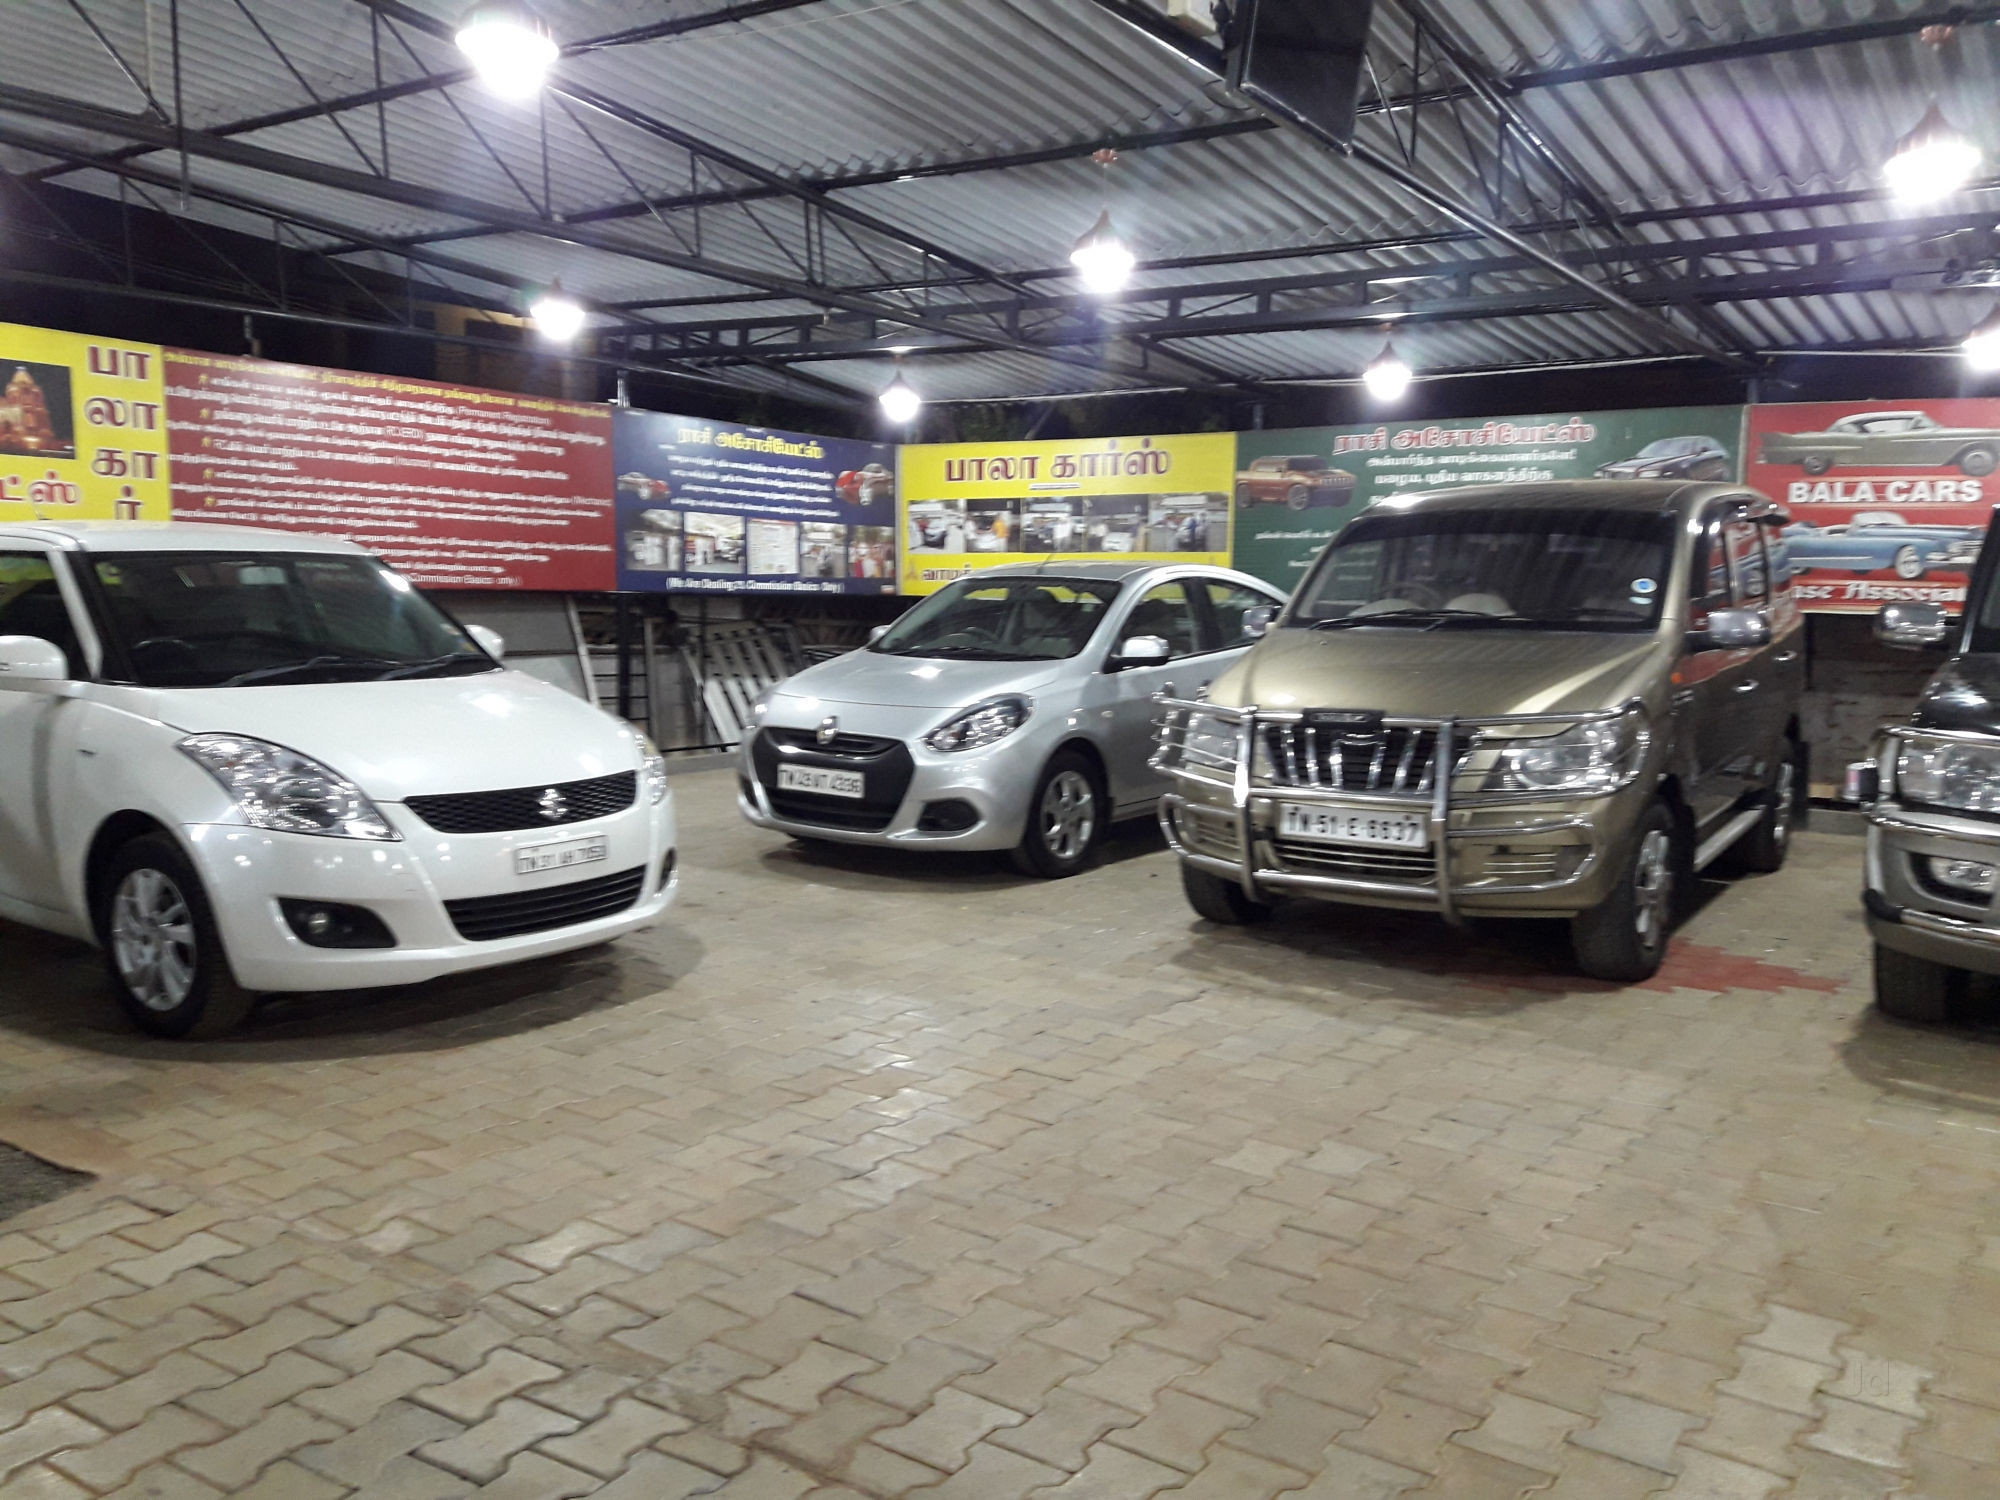 used car inventory mobile al inspirational bala cars second hand car dealers in thanjavur justdial of